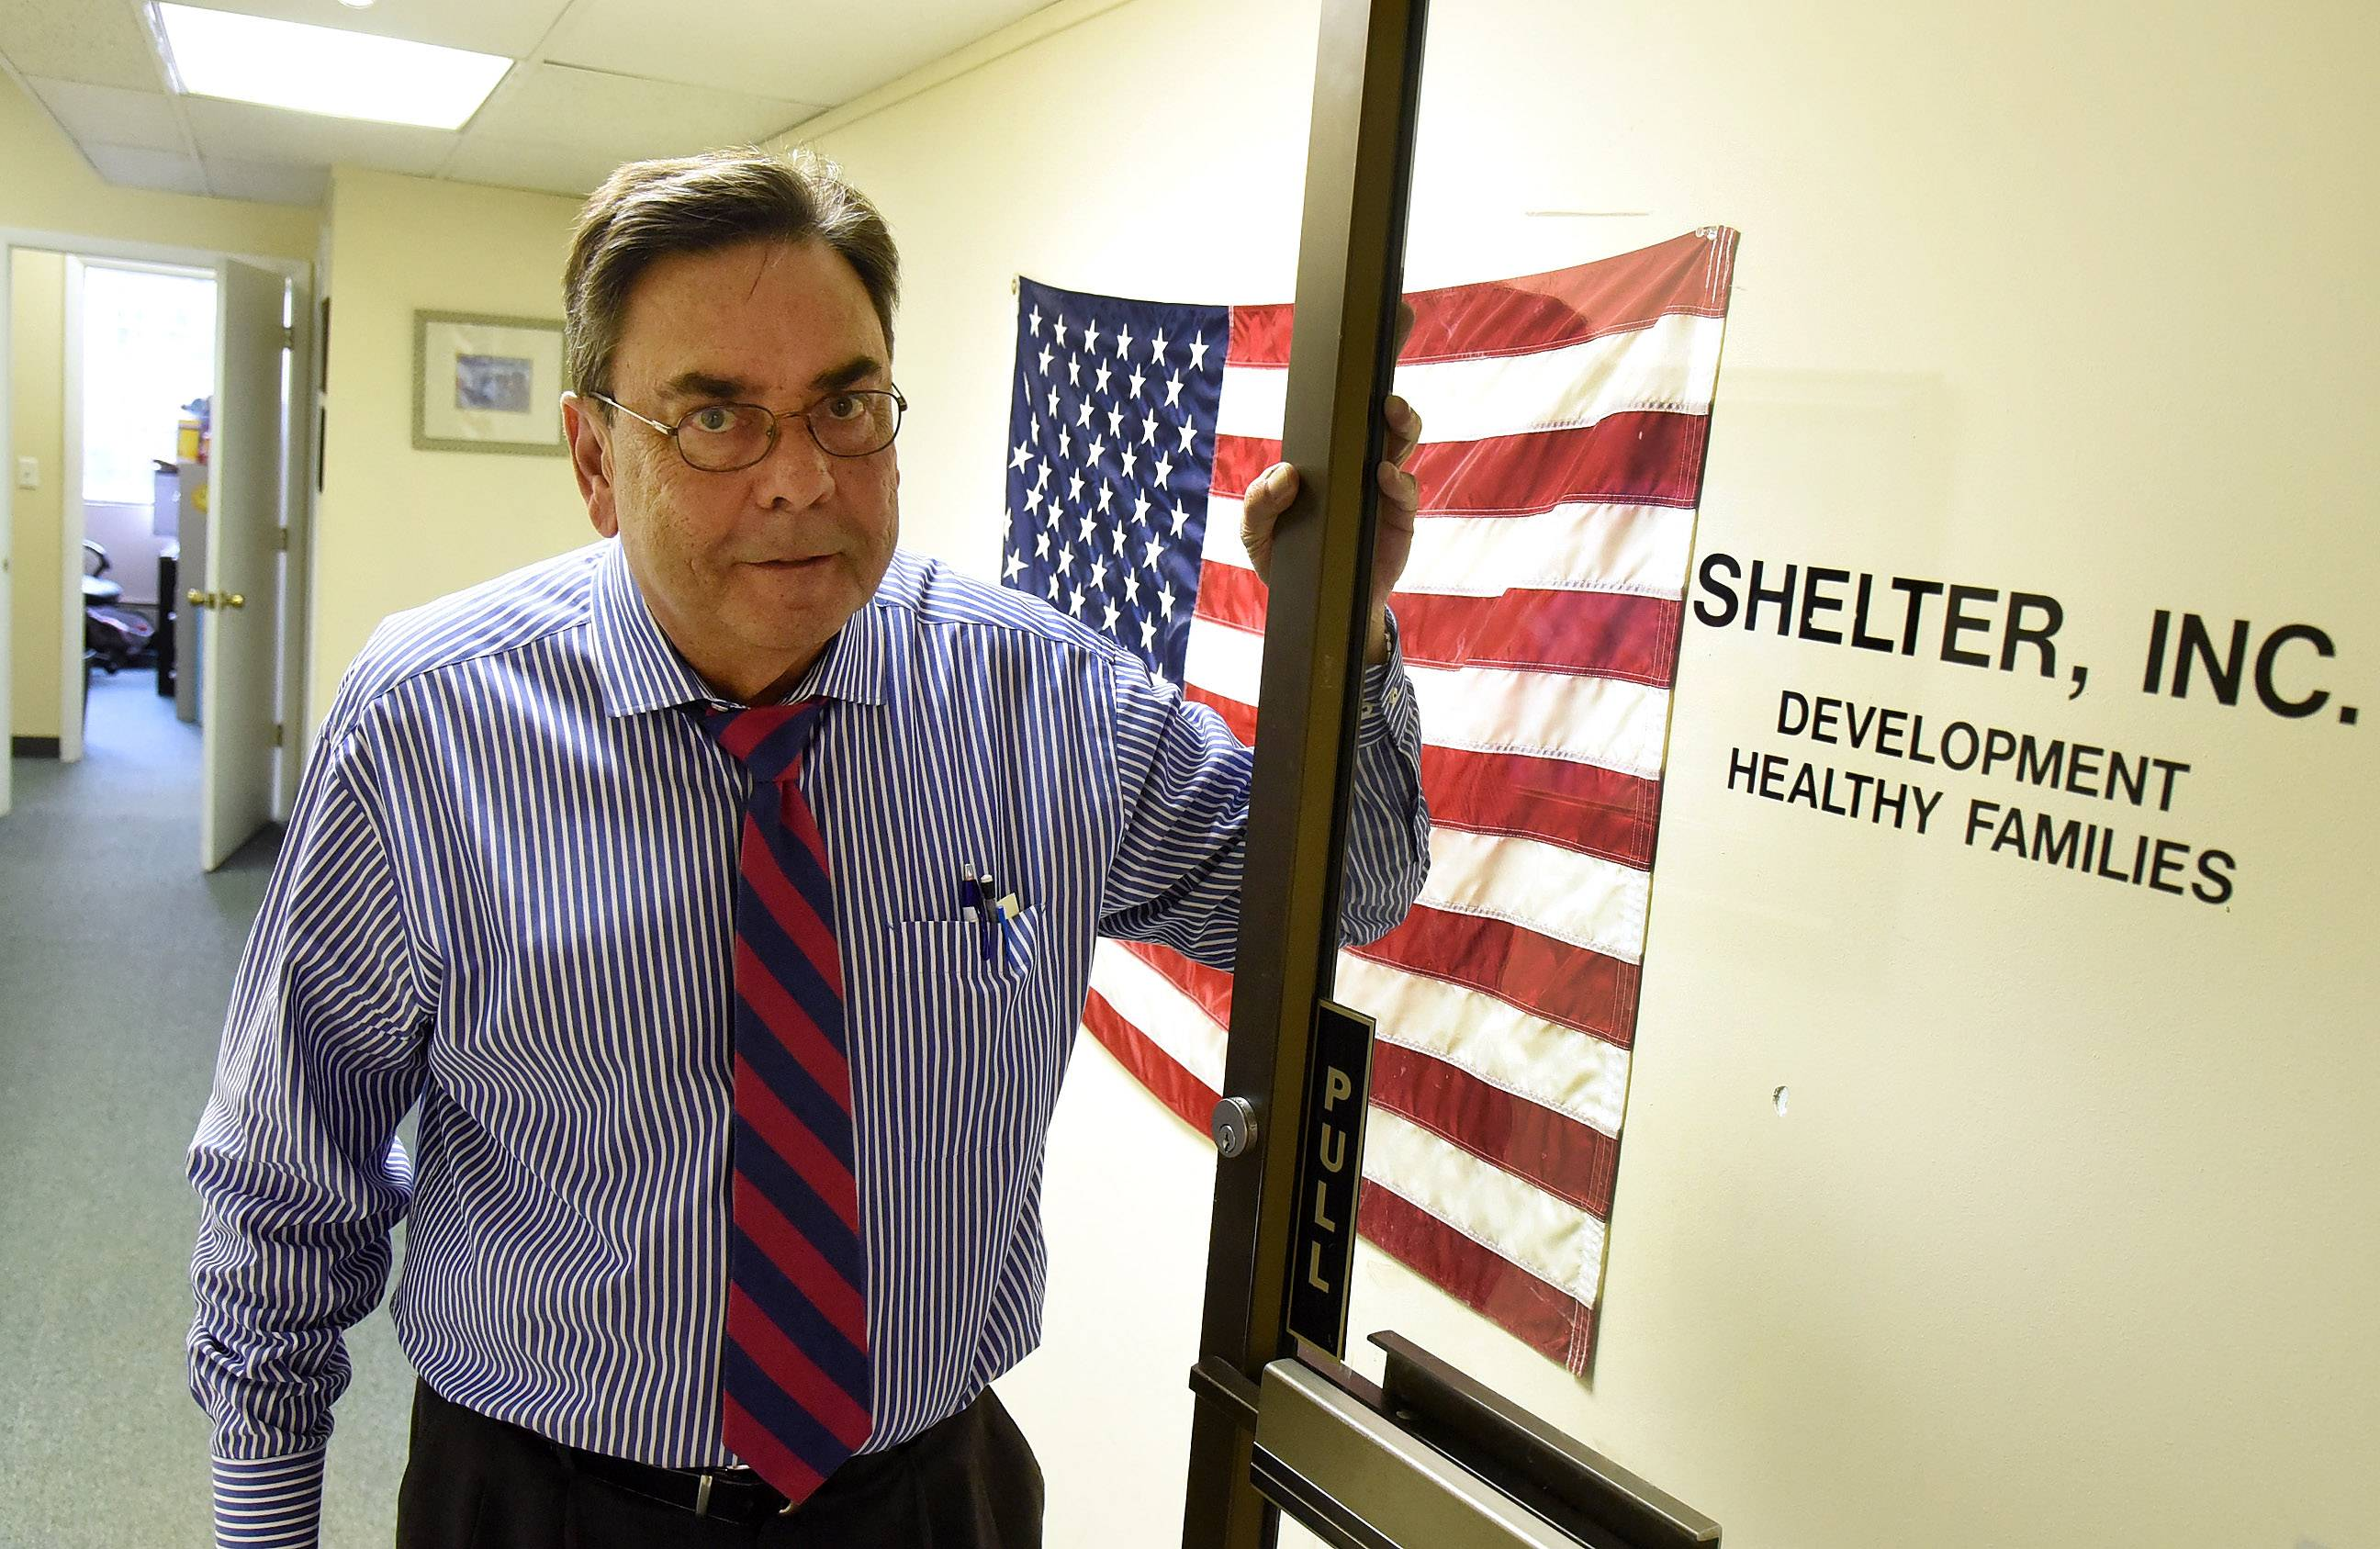 Tom Eagan, associate director of Shelter Inc., in the Arlington Heights office.